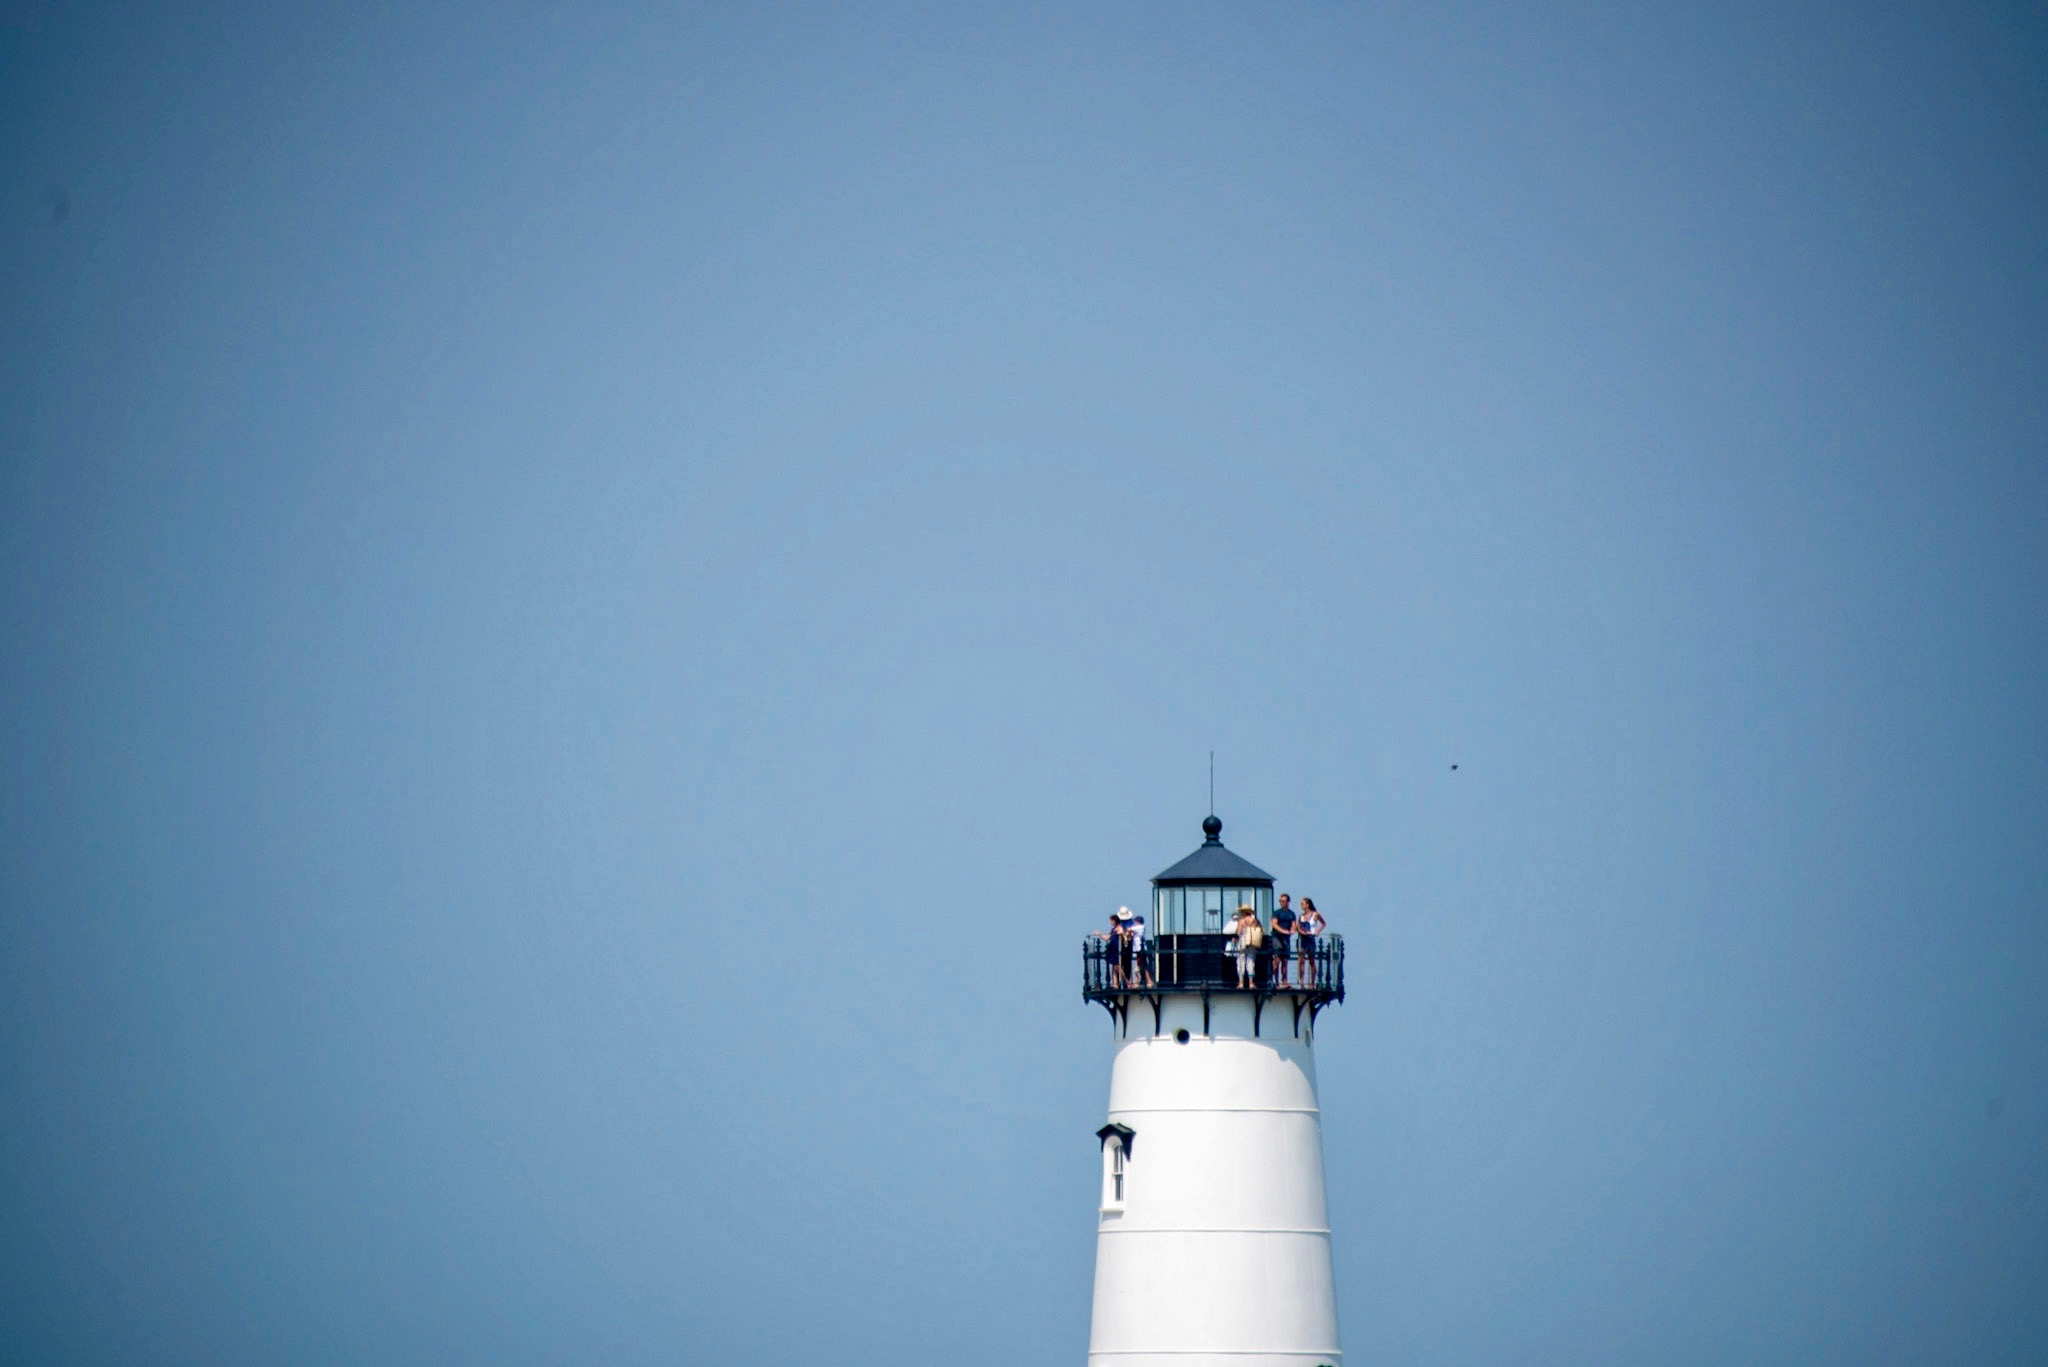 Tourists take in the view from atop Edgartown Lighthouse.